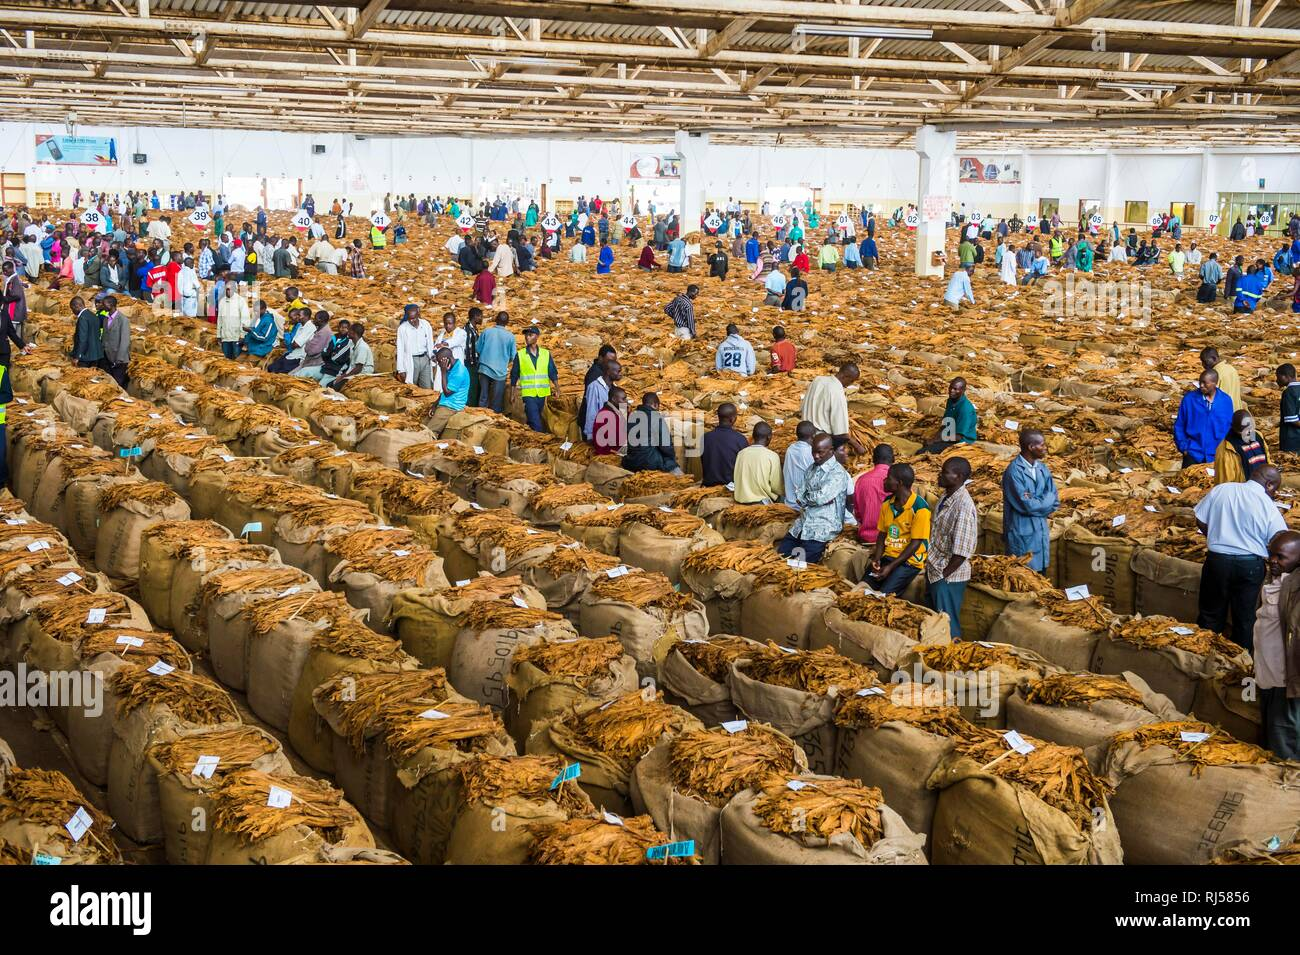 Local workers between huge bags with dried tobacco leaves in a hall on a Tobacco auction, Lilongwe, Malawi - Stock Image